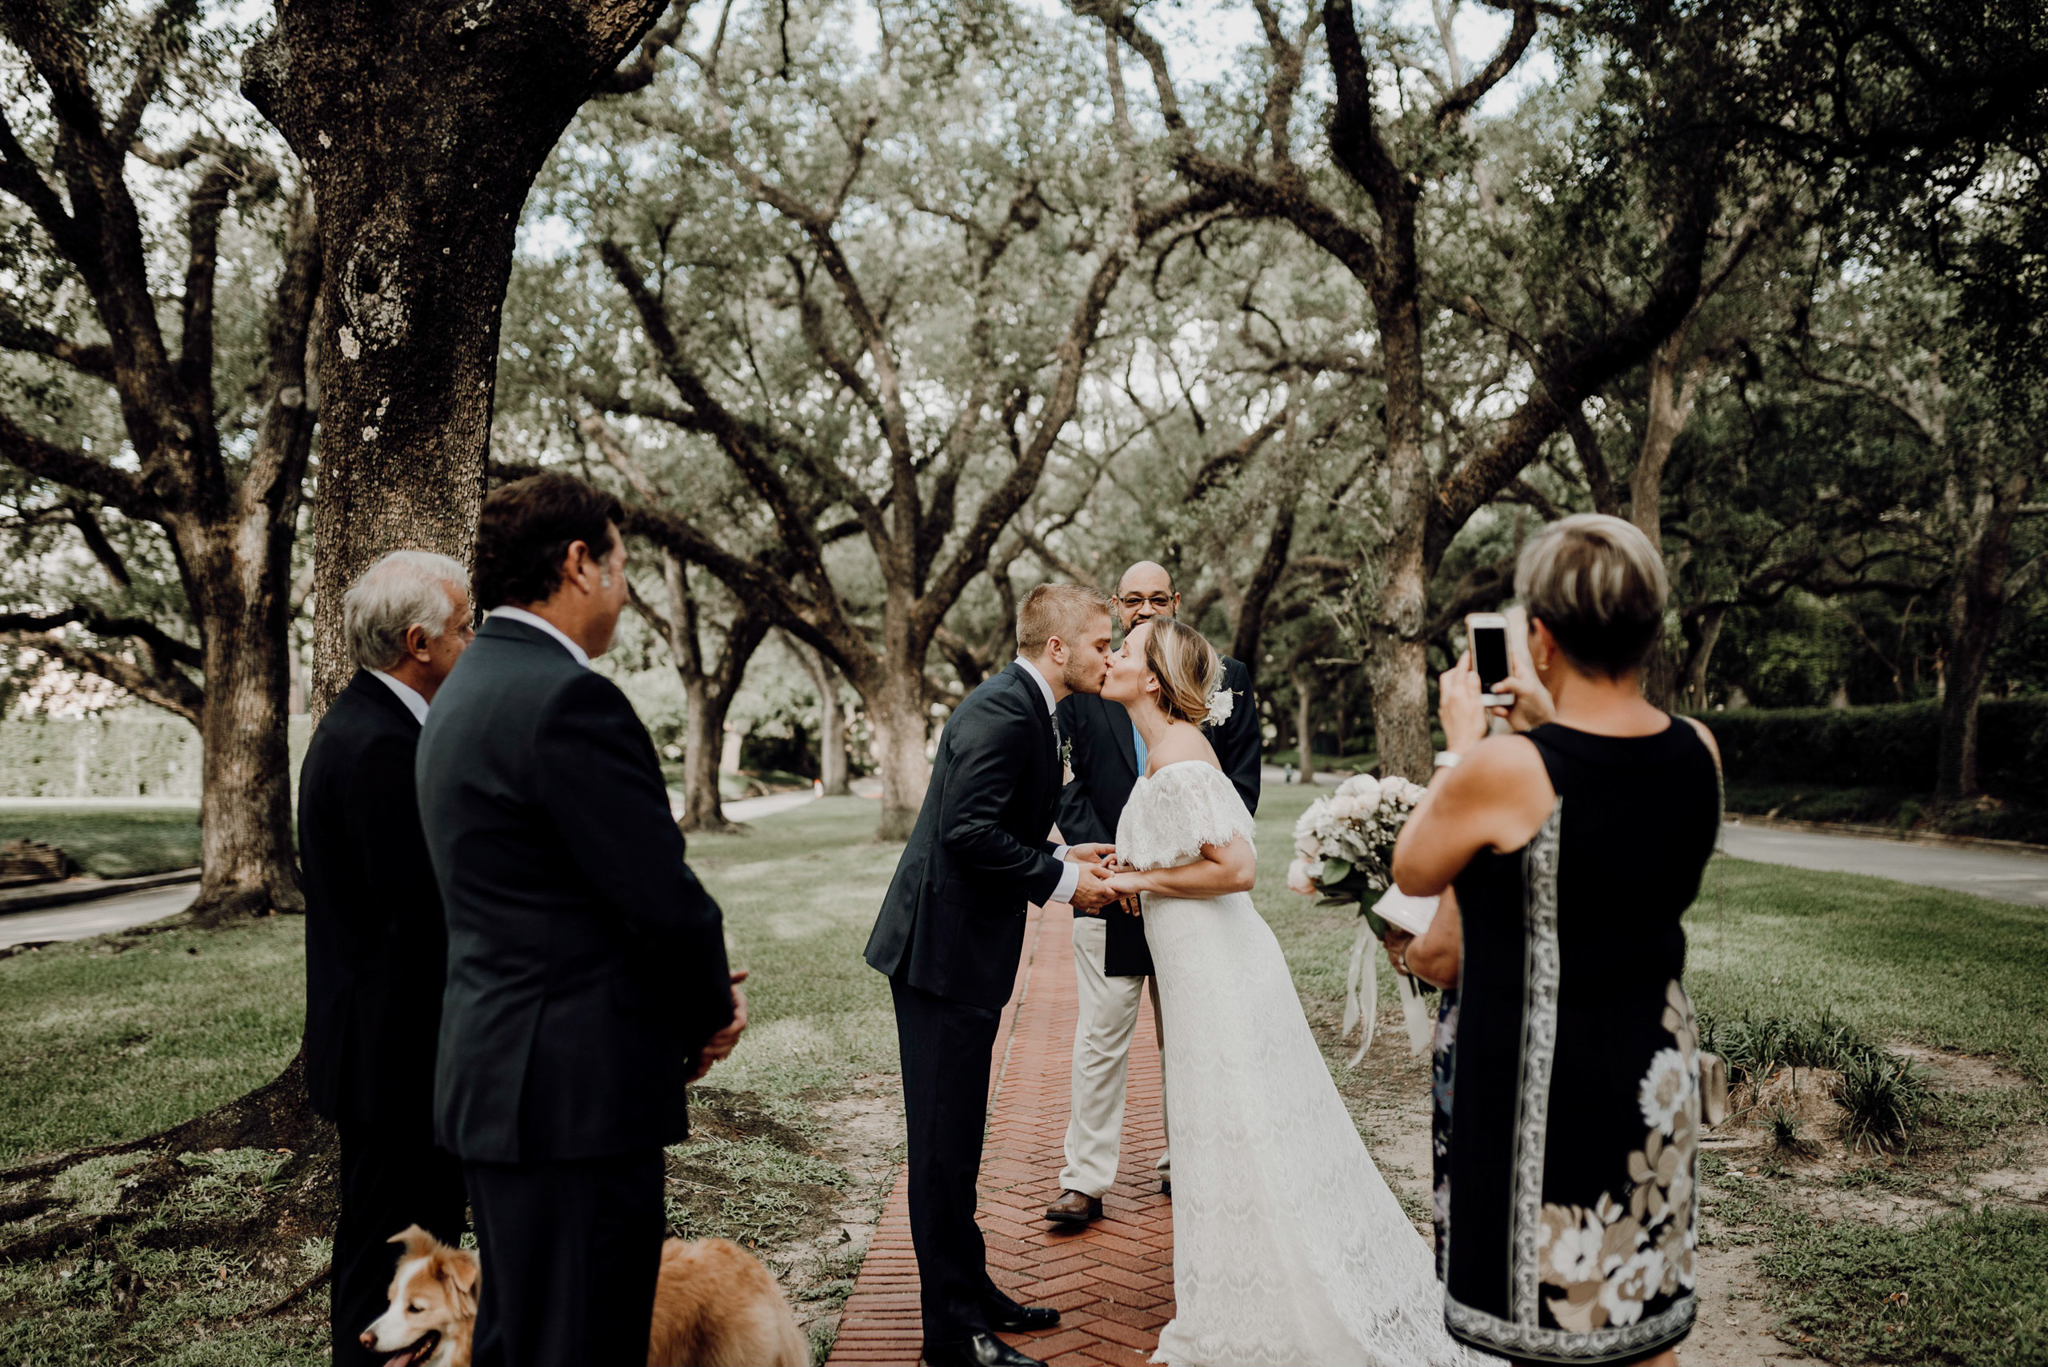 Houston Wedding Photographer-North Blvd Intimate Elopement- Houston Wedding Photographer -Kristen Giles Photography-34.jpg